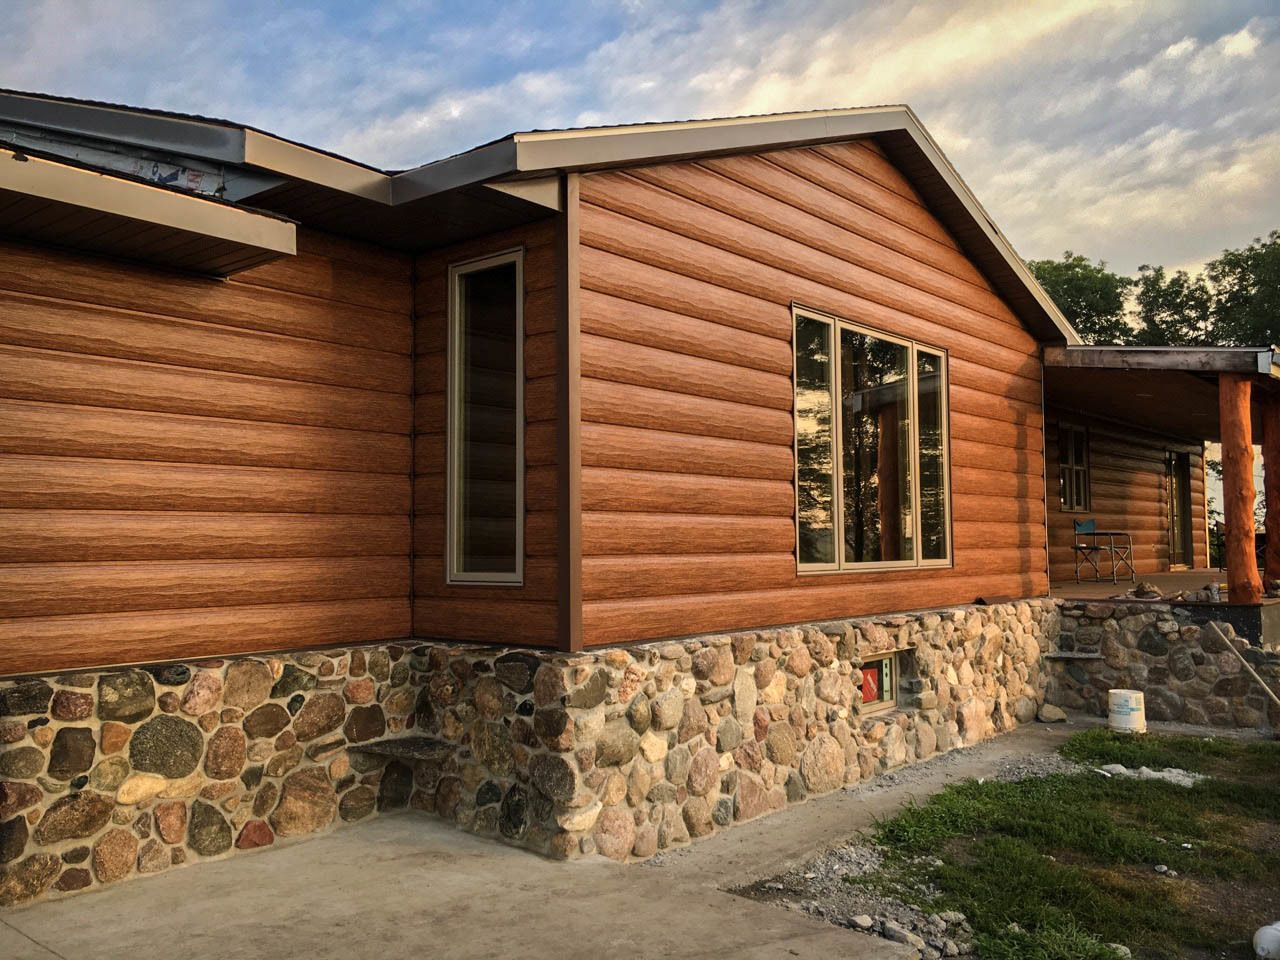 Red Cedar Cabin Siding Maintenance Free Log Siding Log Vinyl Siding Trulog Steel Log Siding Log Homes Exterior Log Cabin Exterior Exterior Siding